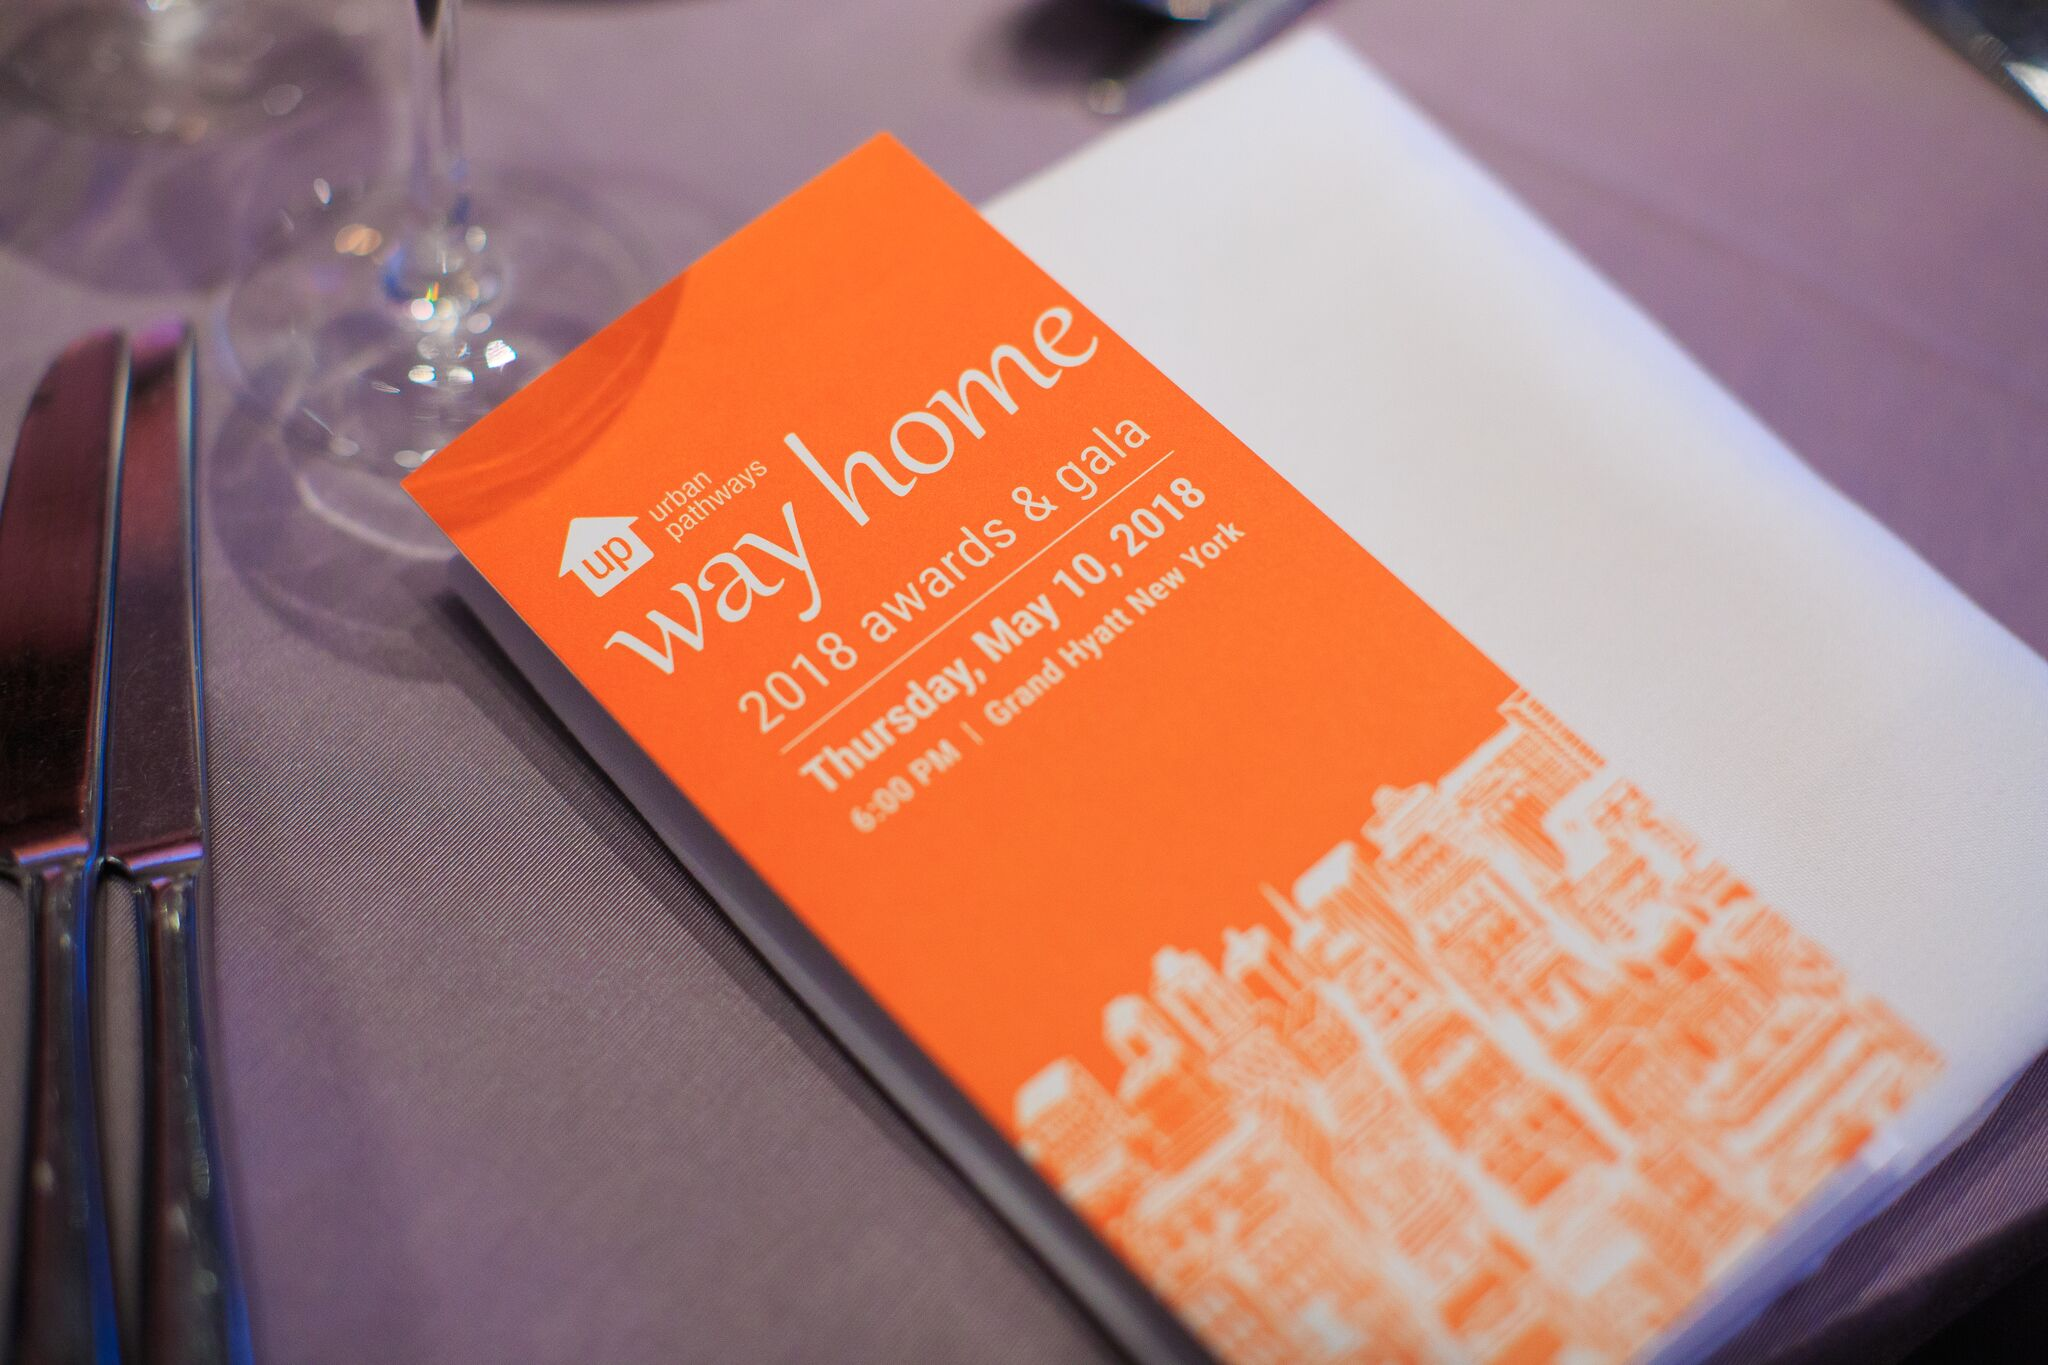 Supporters, influencers, and ambassadors celebrated the work Urban Pathways is doing to change lives, uplift communities and end homelessness at Urban Pathways annual Gala.